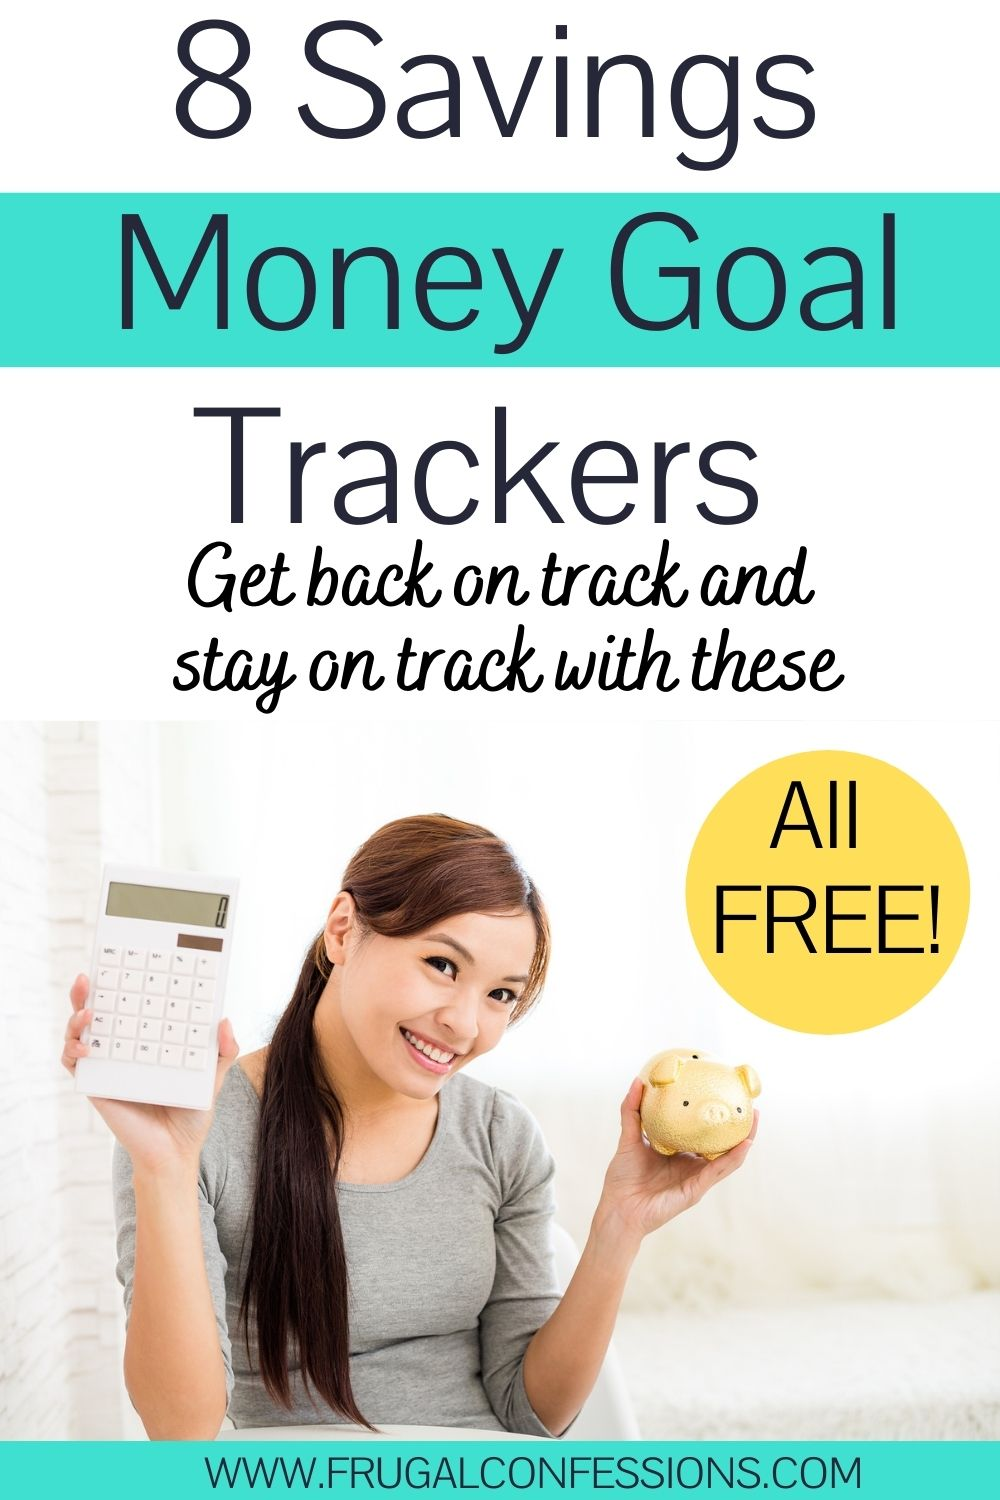 """young woman with calculator and piggy bank smiling, text overlay """"8 saving money goal trackers - all free"""""""